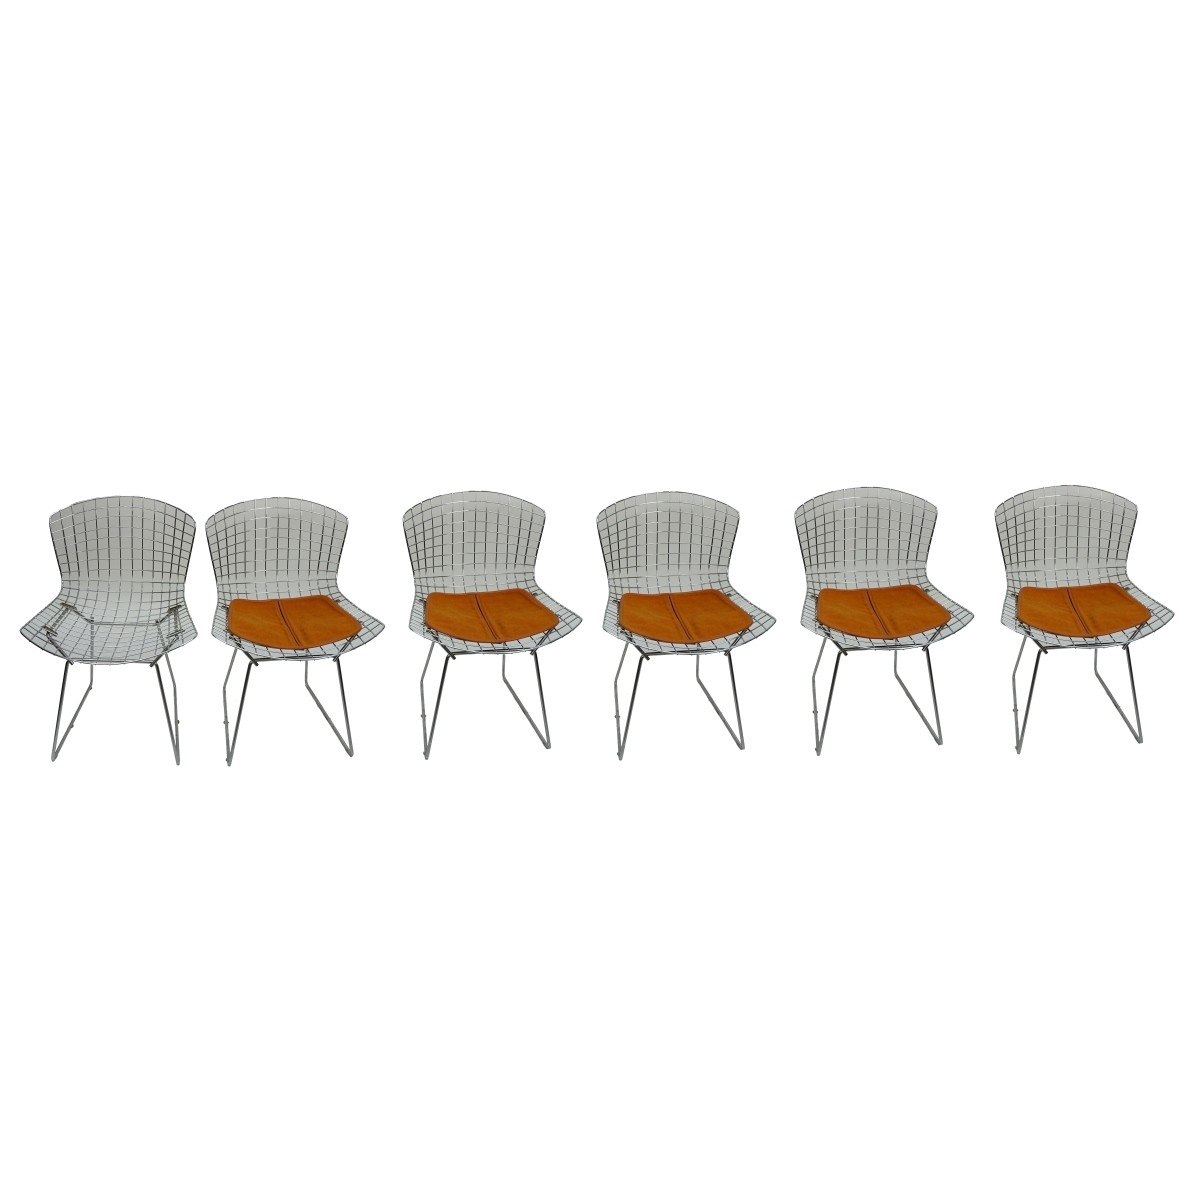 Bertoia Design Knoll Chairs